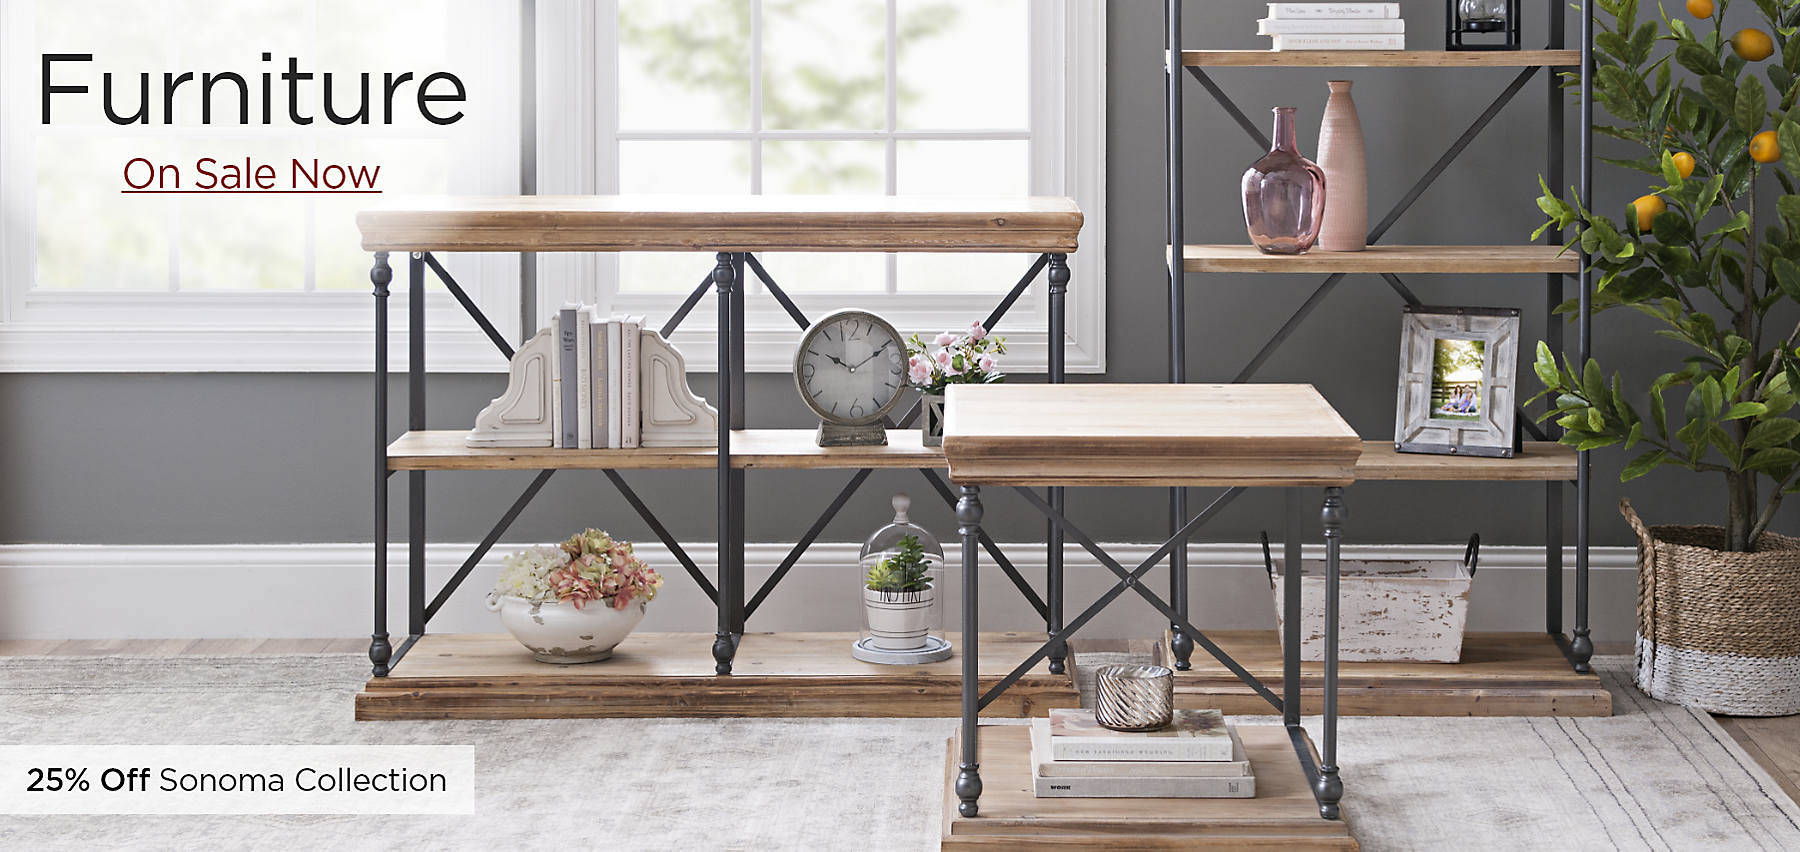 Furniture On Sale Now Featuring the Sonoma Collection 25% Off Online Only